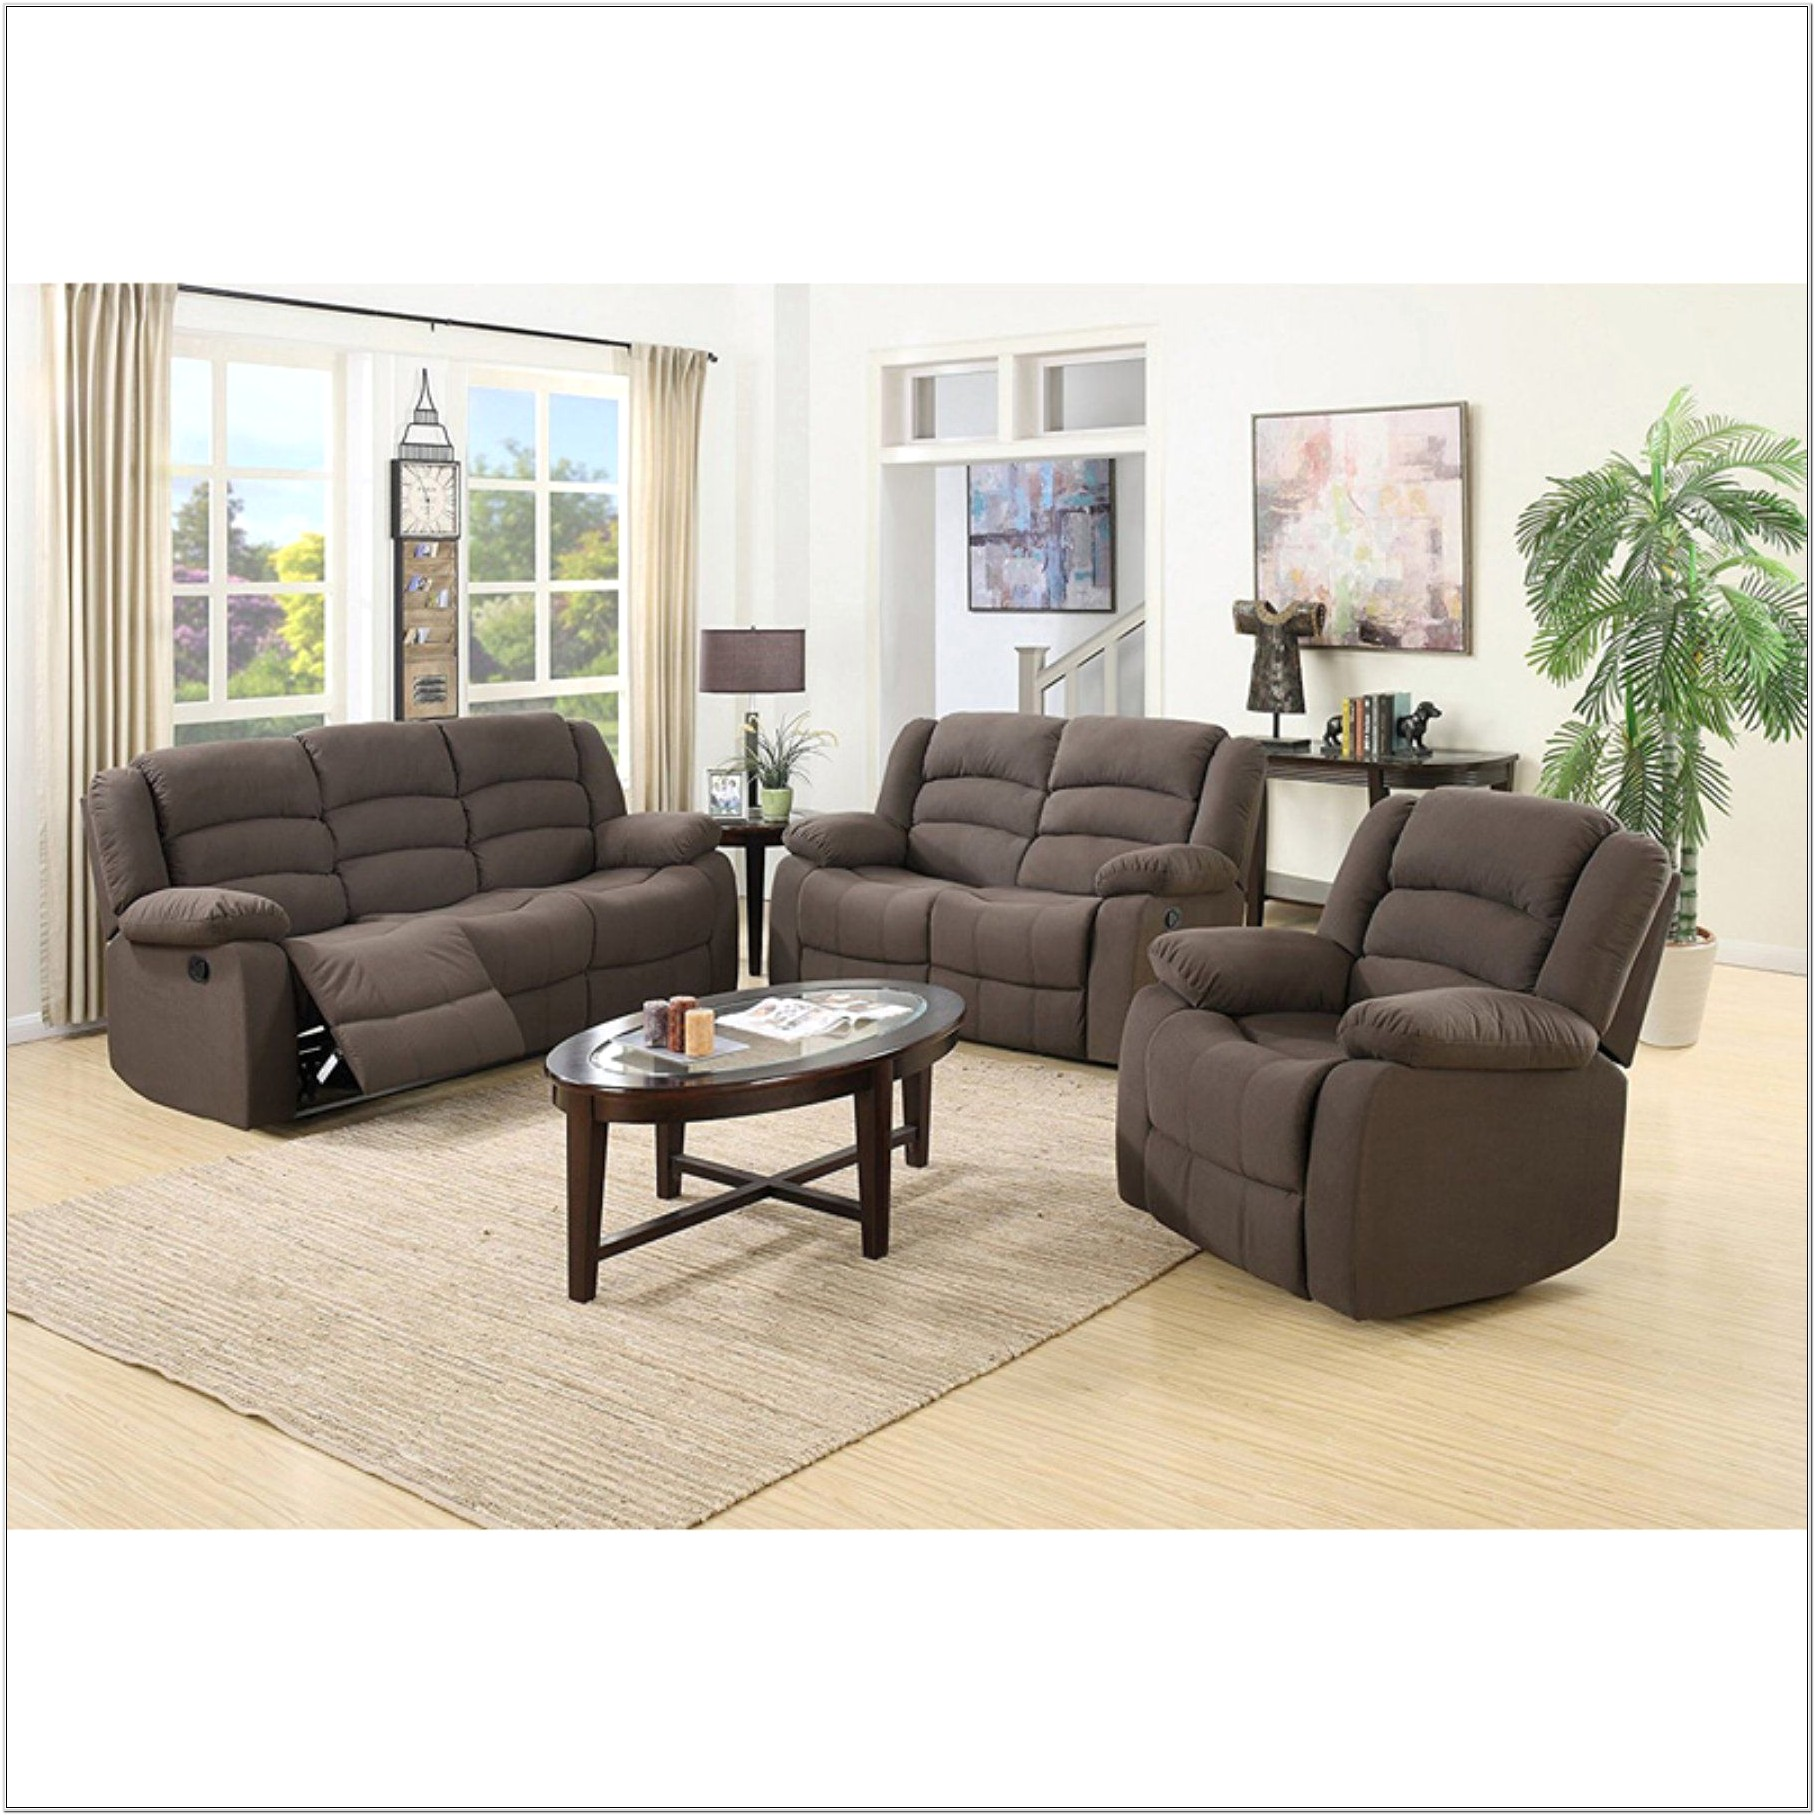 Dallas 3 Piece Living Room Set